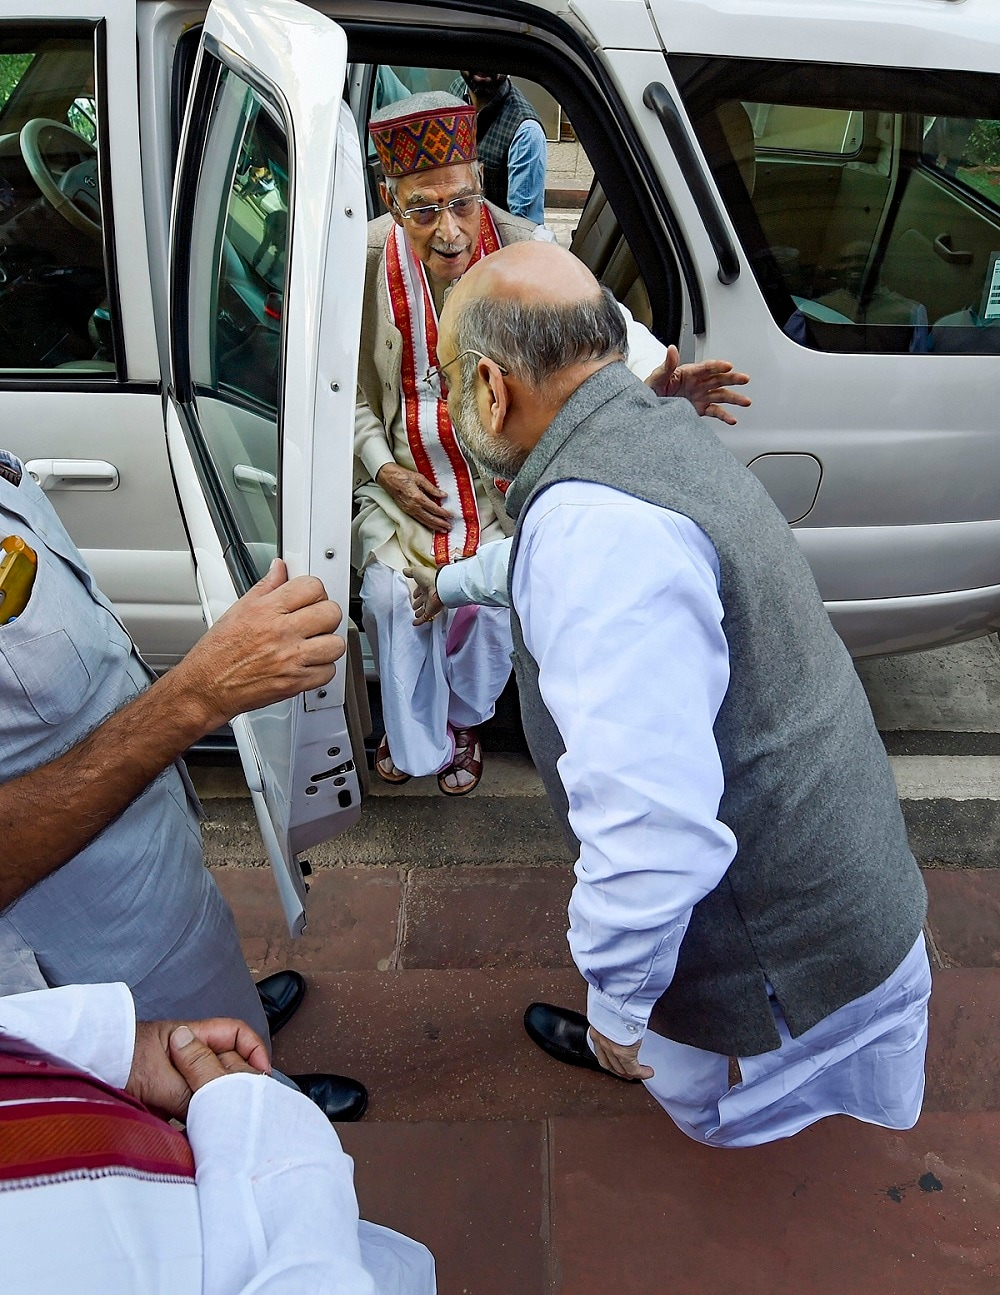 Union Home Minister Amit Shah seeks blessings from senior BJP leader Murli Manohar Joshi as the latter arrives on the first day of the Winter Session of Parliament. (PTI Photo/Atul Yadav)(PTI11_18_2019_000121B)